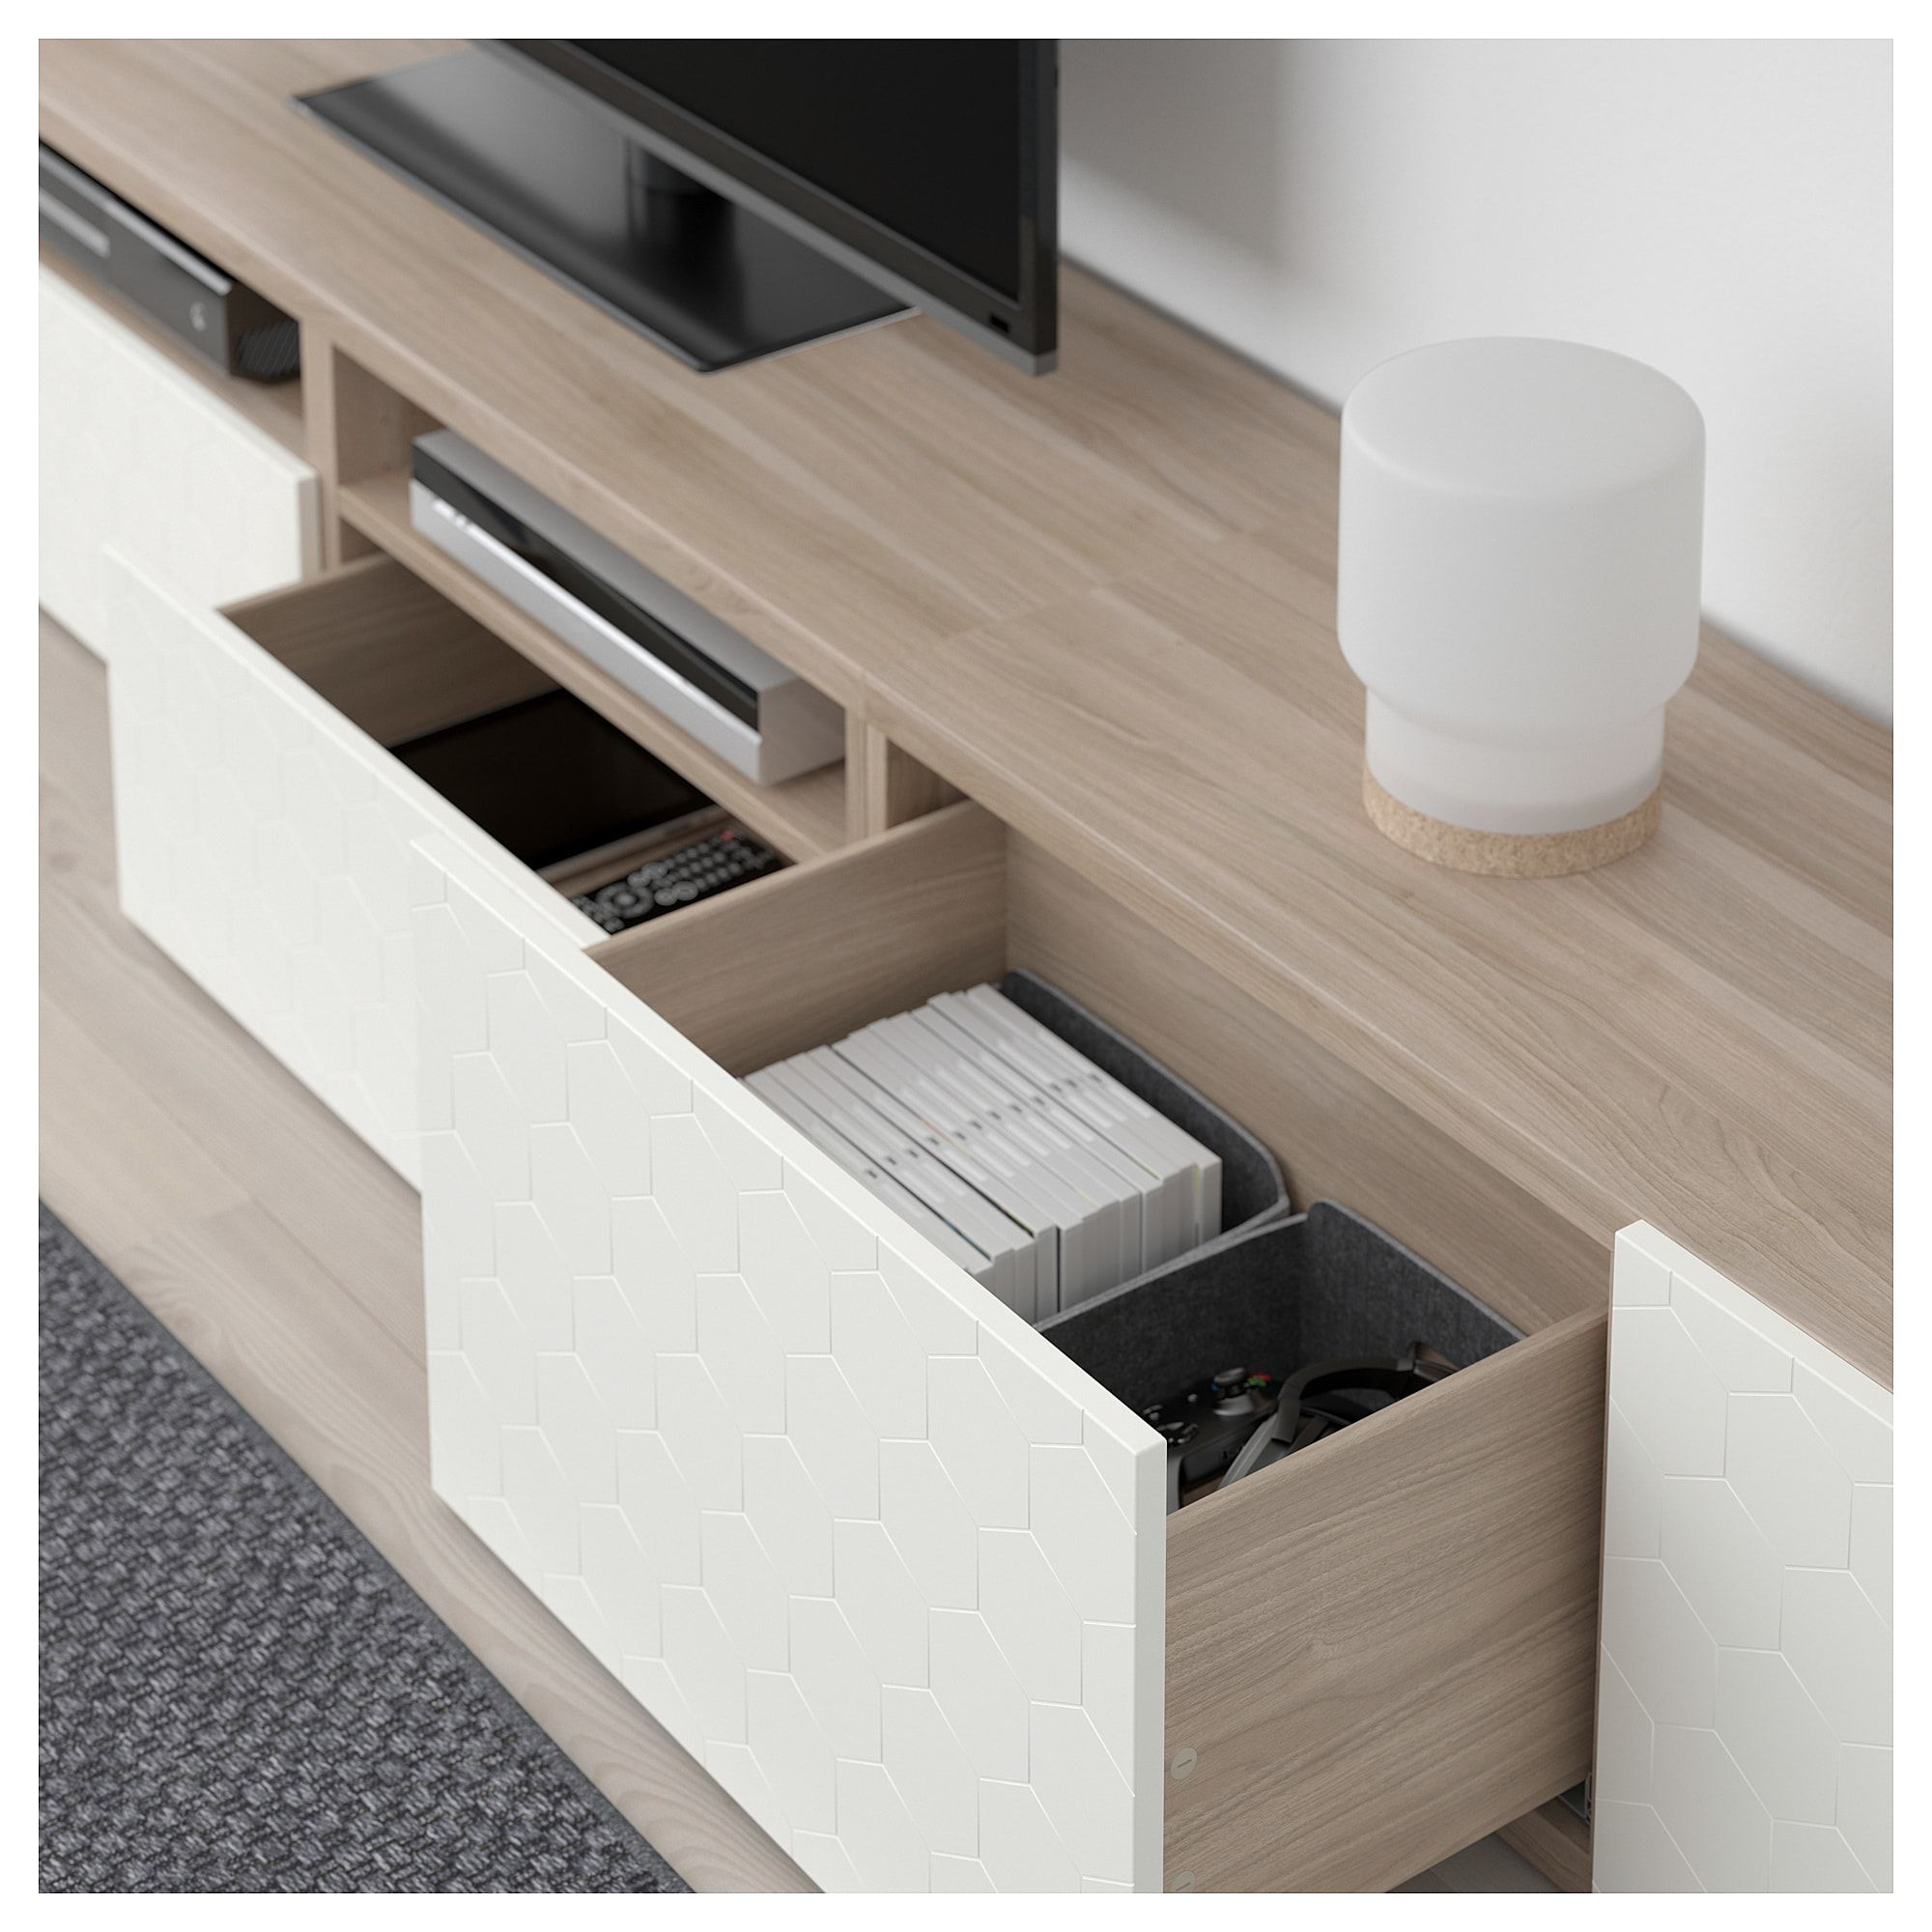 Furniture Home Furnishings Find Your Inspiration In 2021 Tv Storage White Storage At Home Furniture Store